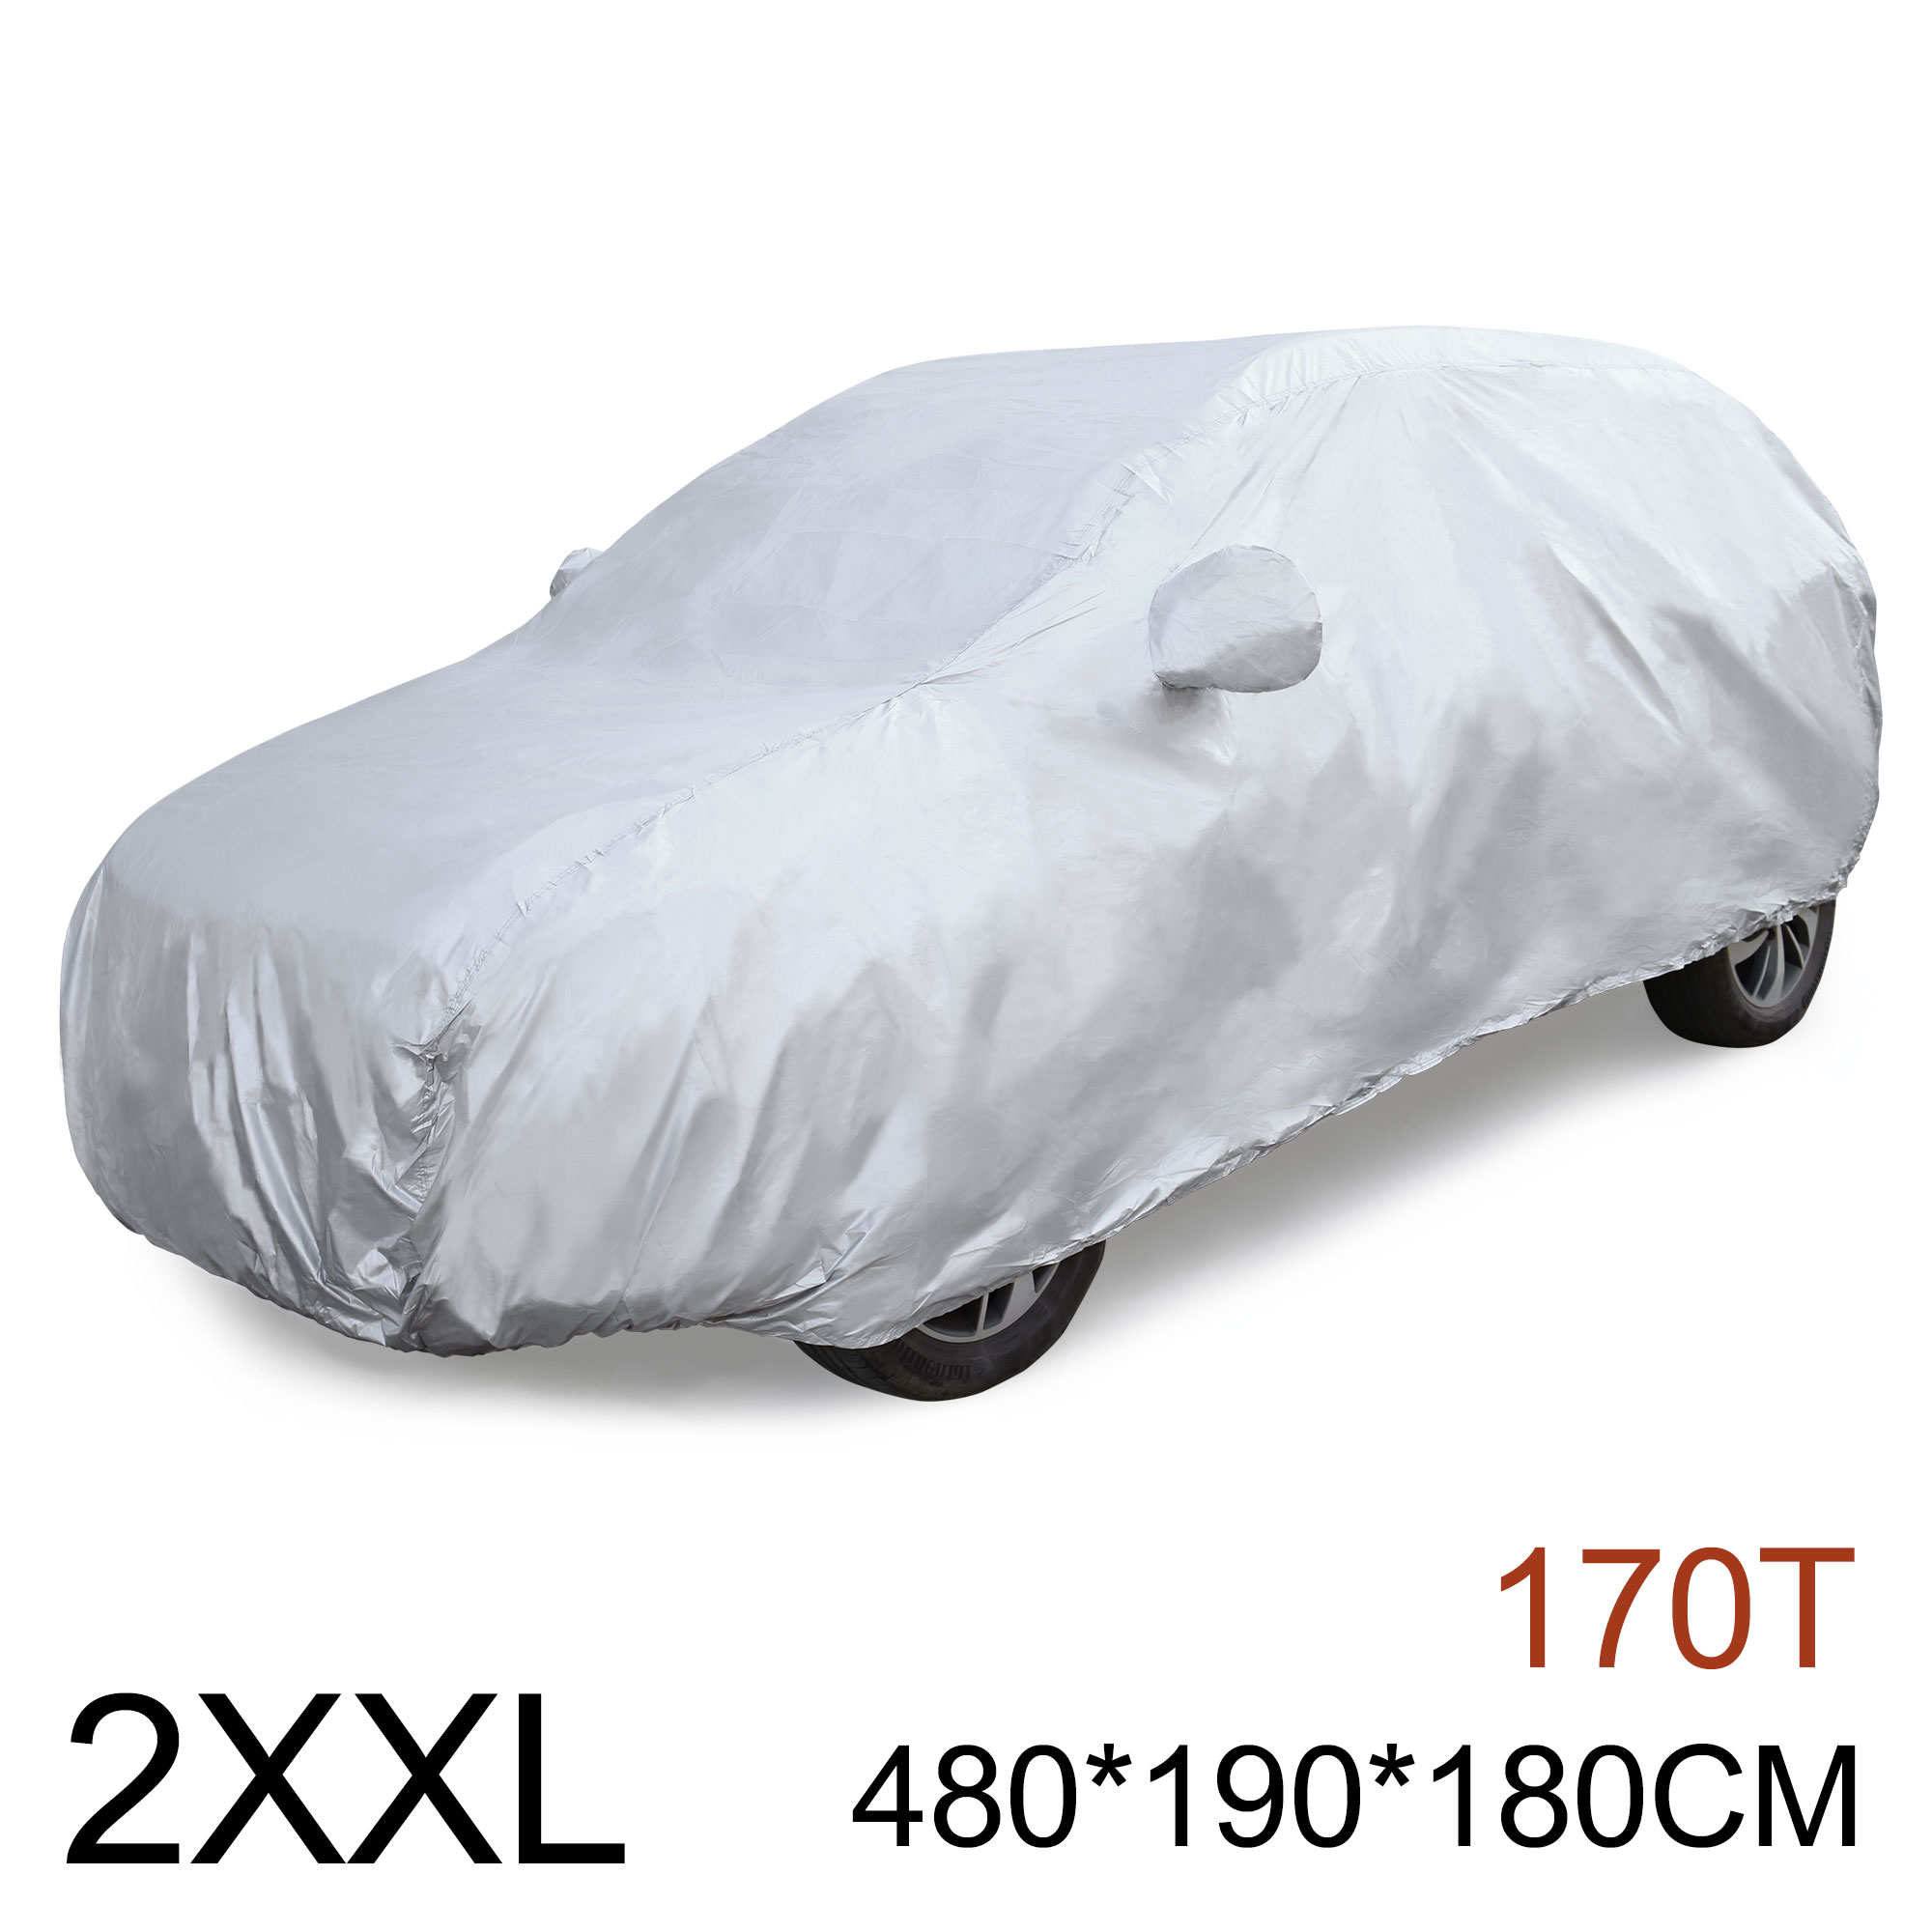 2XXL 170T Car Cover Weather Waterproof Scratch Rain Snow Heat Resistant